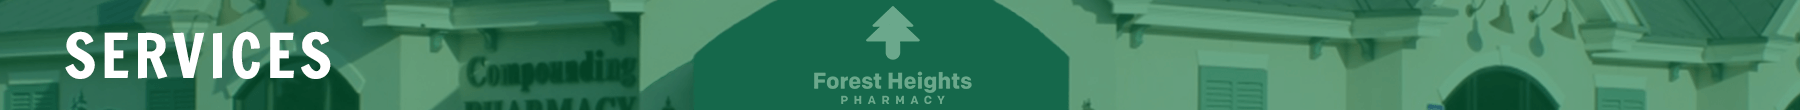 Pharmaceutical Services | Gifts | Forest Heights Pharmacy Statesboro